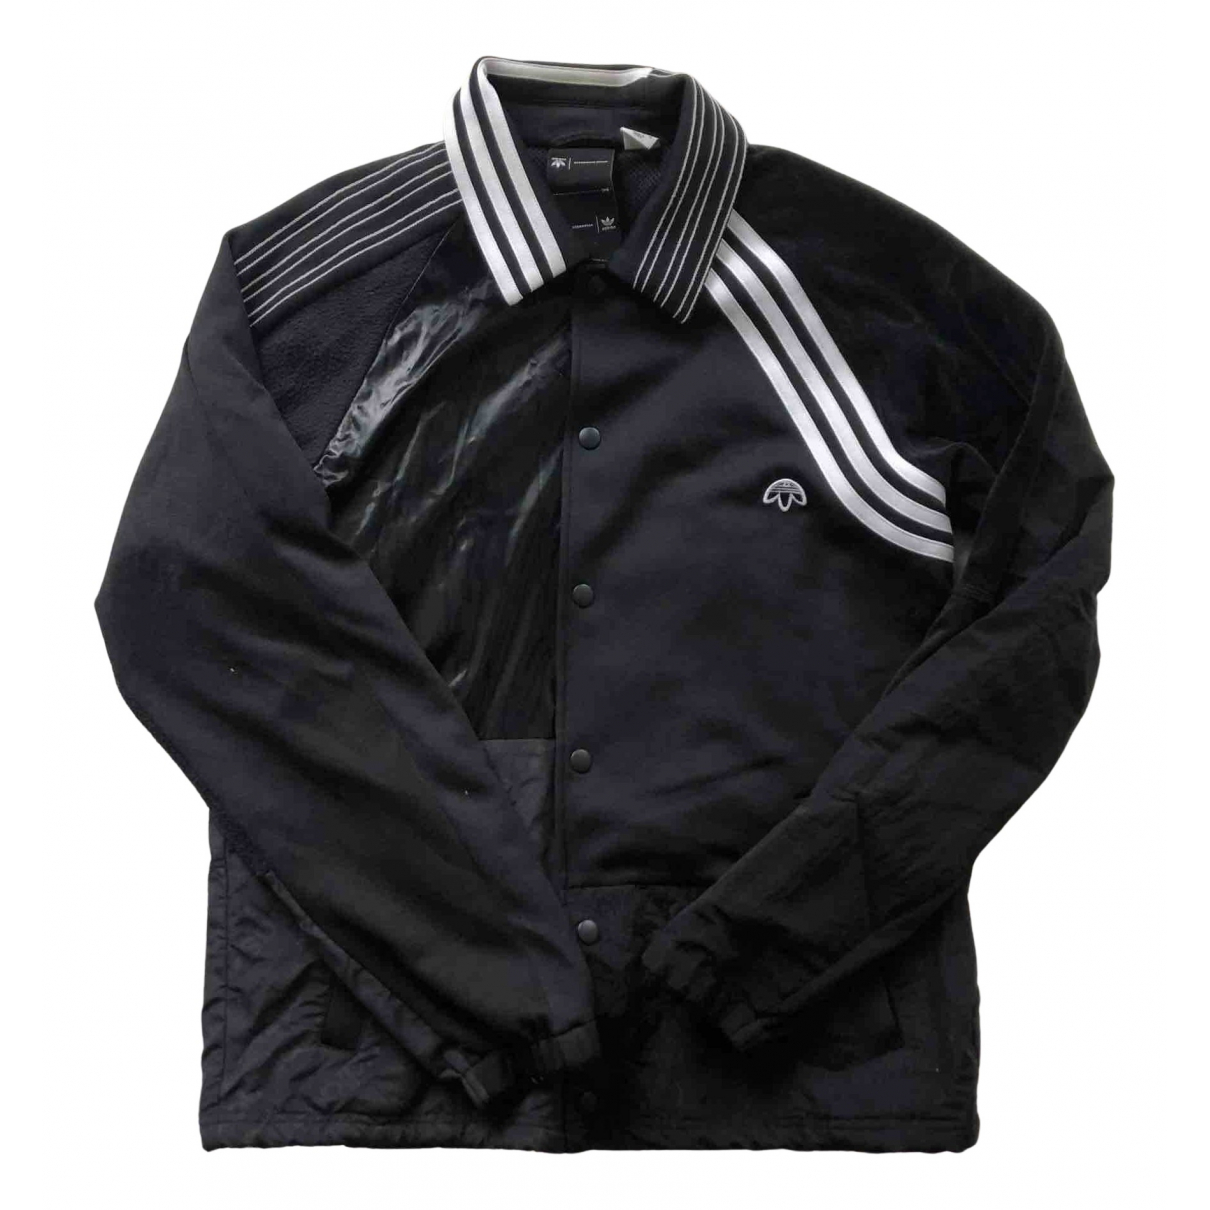 Adidas Originals X Alexander Wang N Black jacket  for Men M International